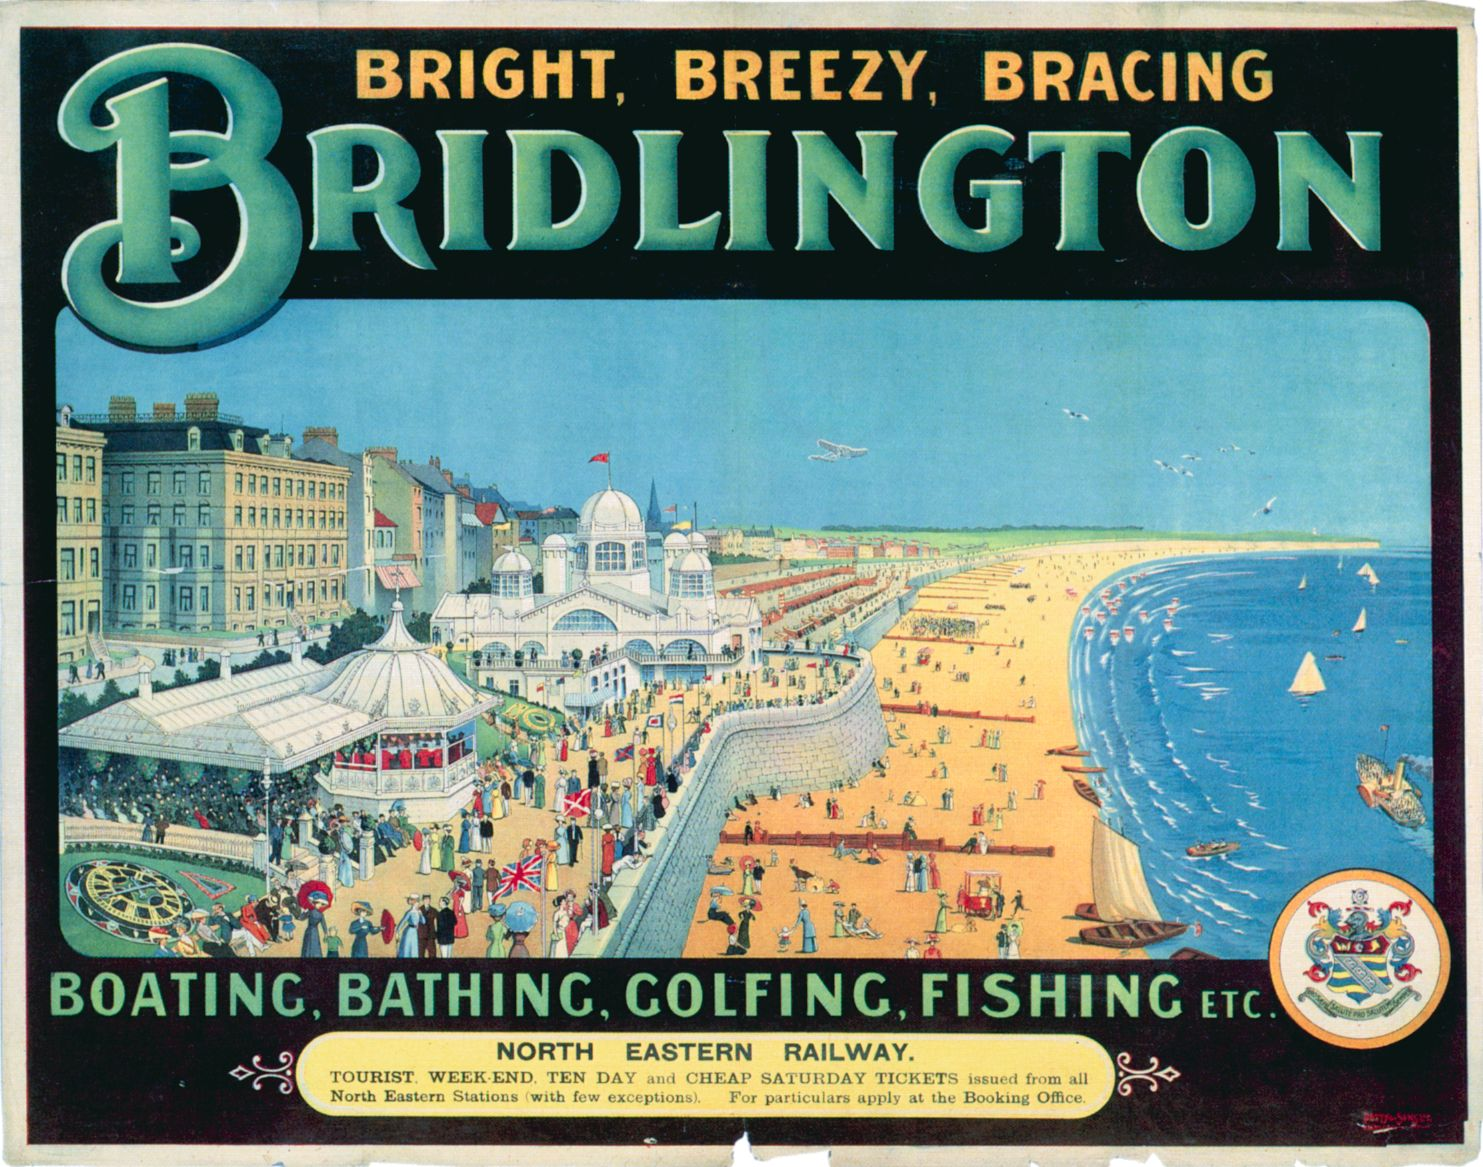 Bridlington Holidays: Why You Should Consider Visiting these Seaside Town